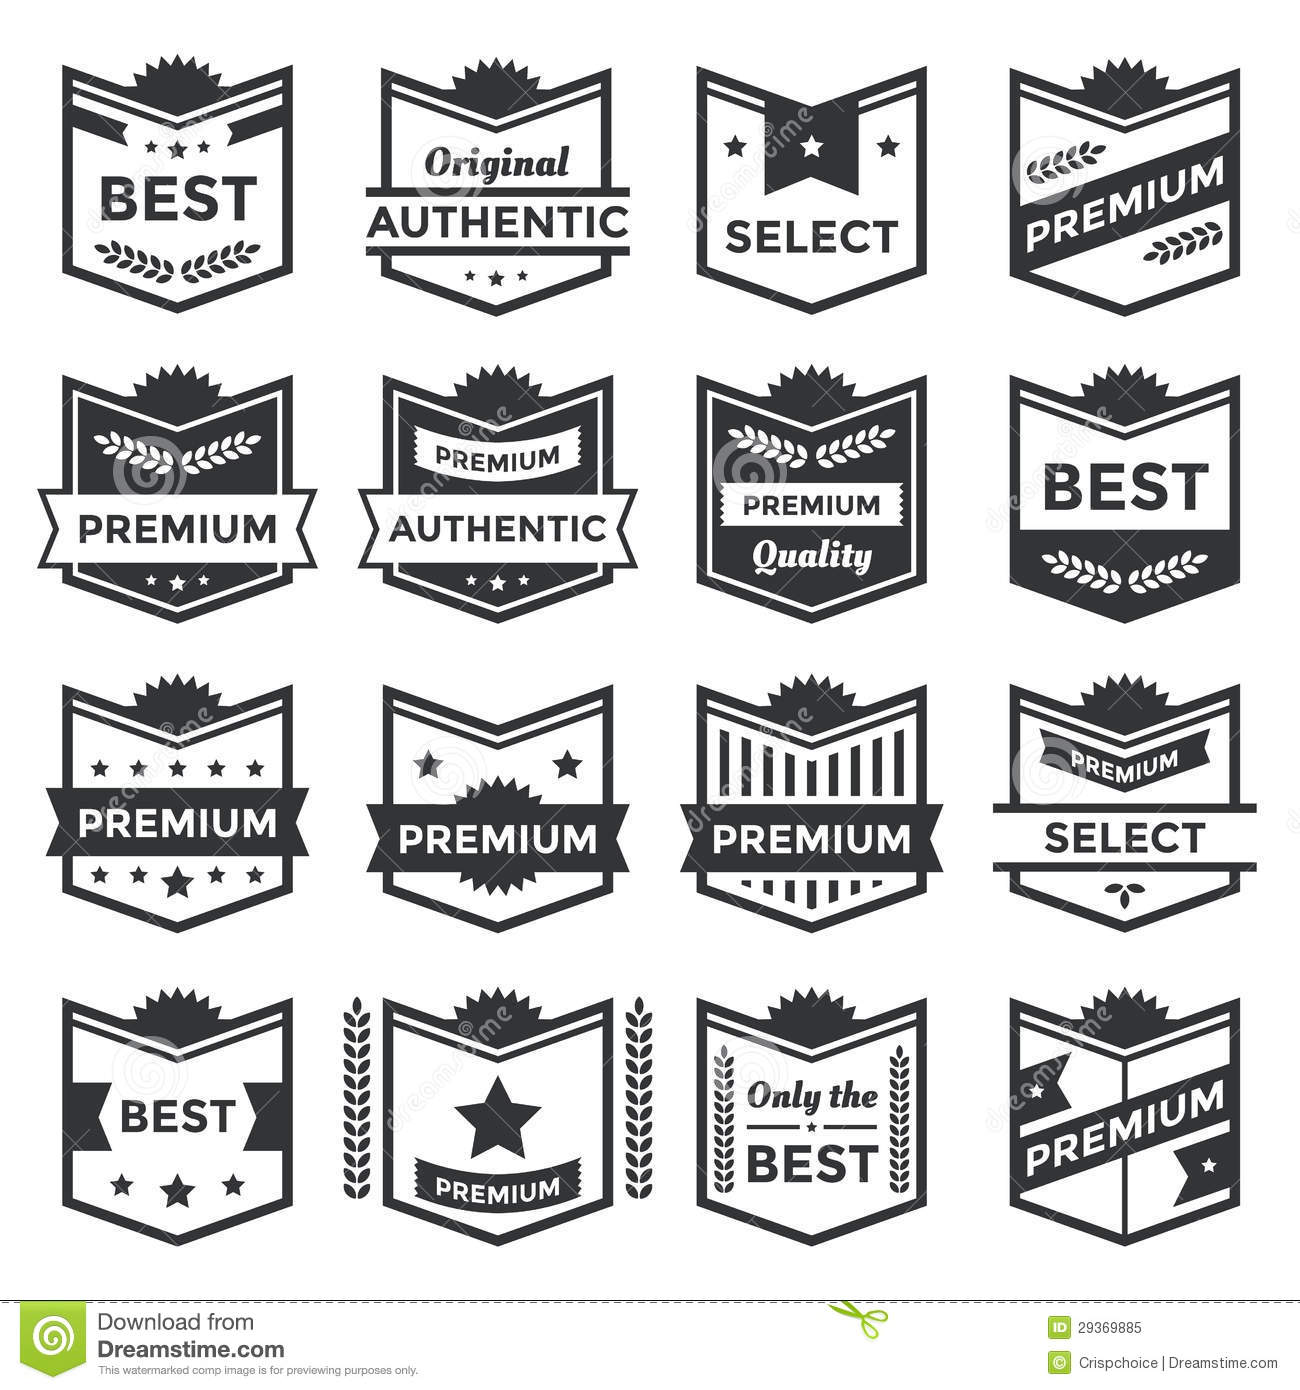 About Us moreover Royalty Free Stock Photos Hand Holding Rolled Paper Vector Illustration Image2077228 additionally Black Borders And Frames also Royalty Free Stock Photo Modern Badge Shields Label Collection Image29369885 in addition Ce. on illustration certification